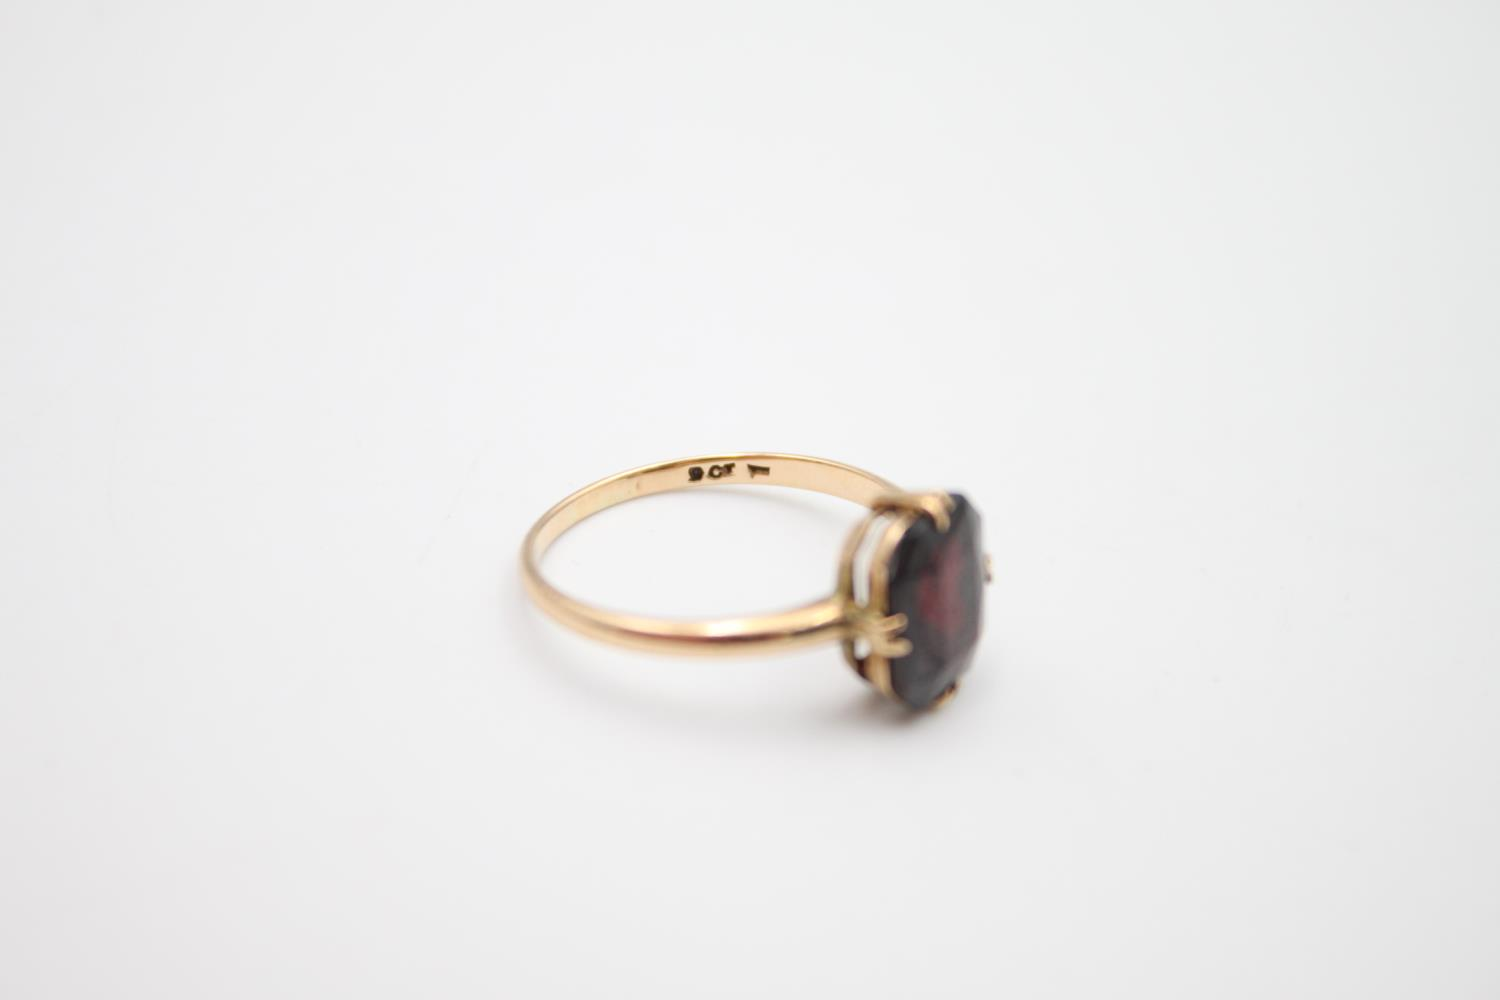 vintage 9ct gold garnet solitaire ring 2.1g Size O - Image 5 of 5